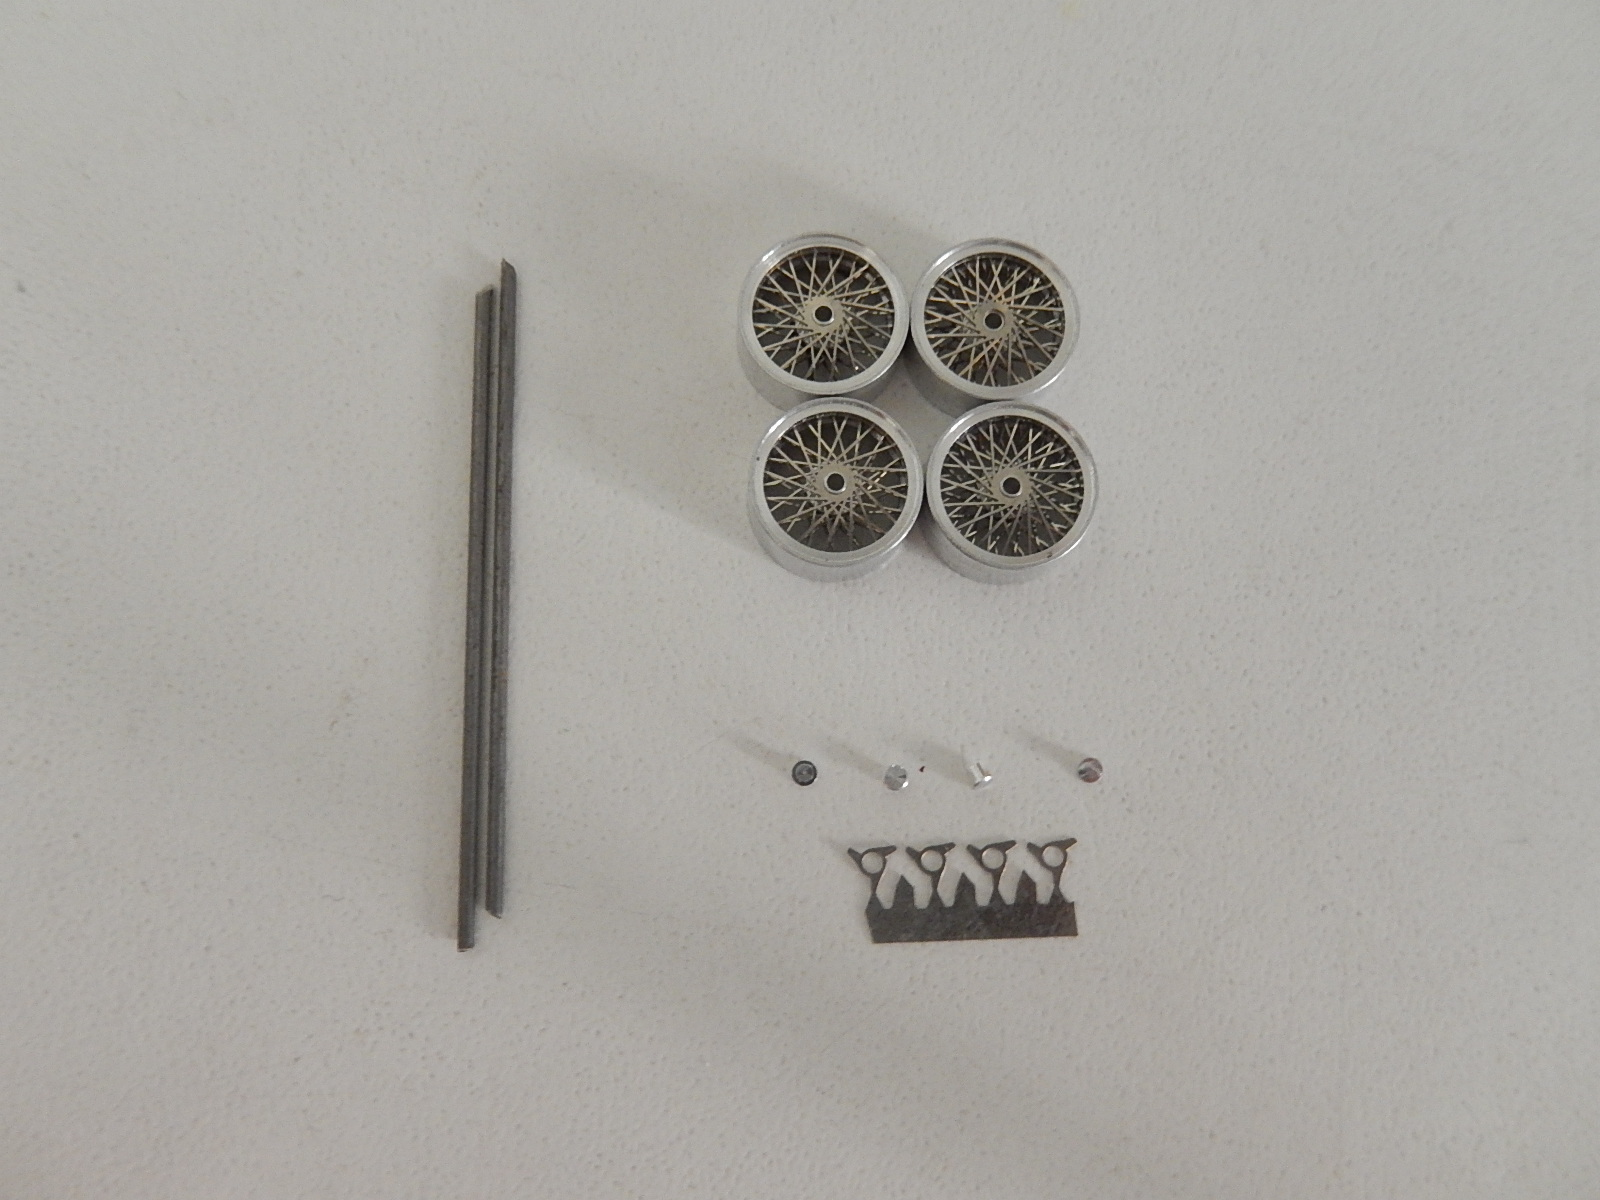 Paddock : 1/43 Wheels 3 blades for Jaguar Ferrari Maserati